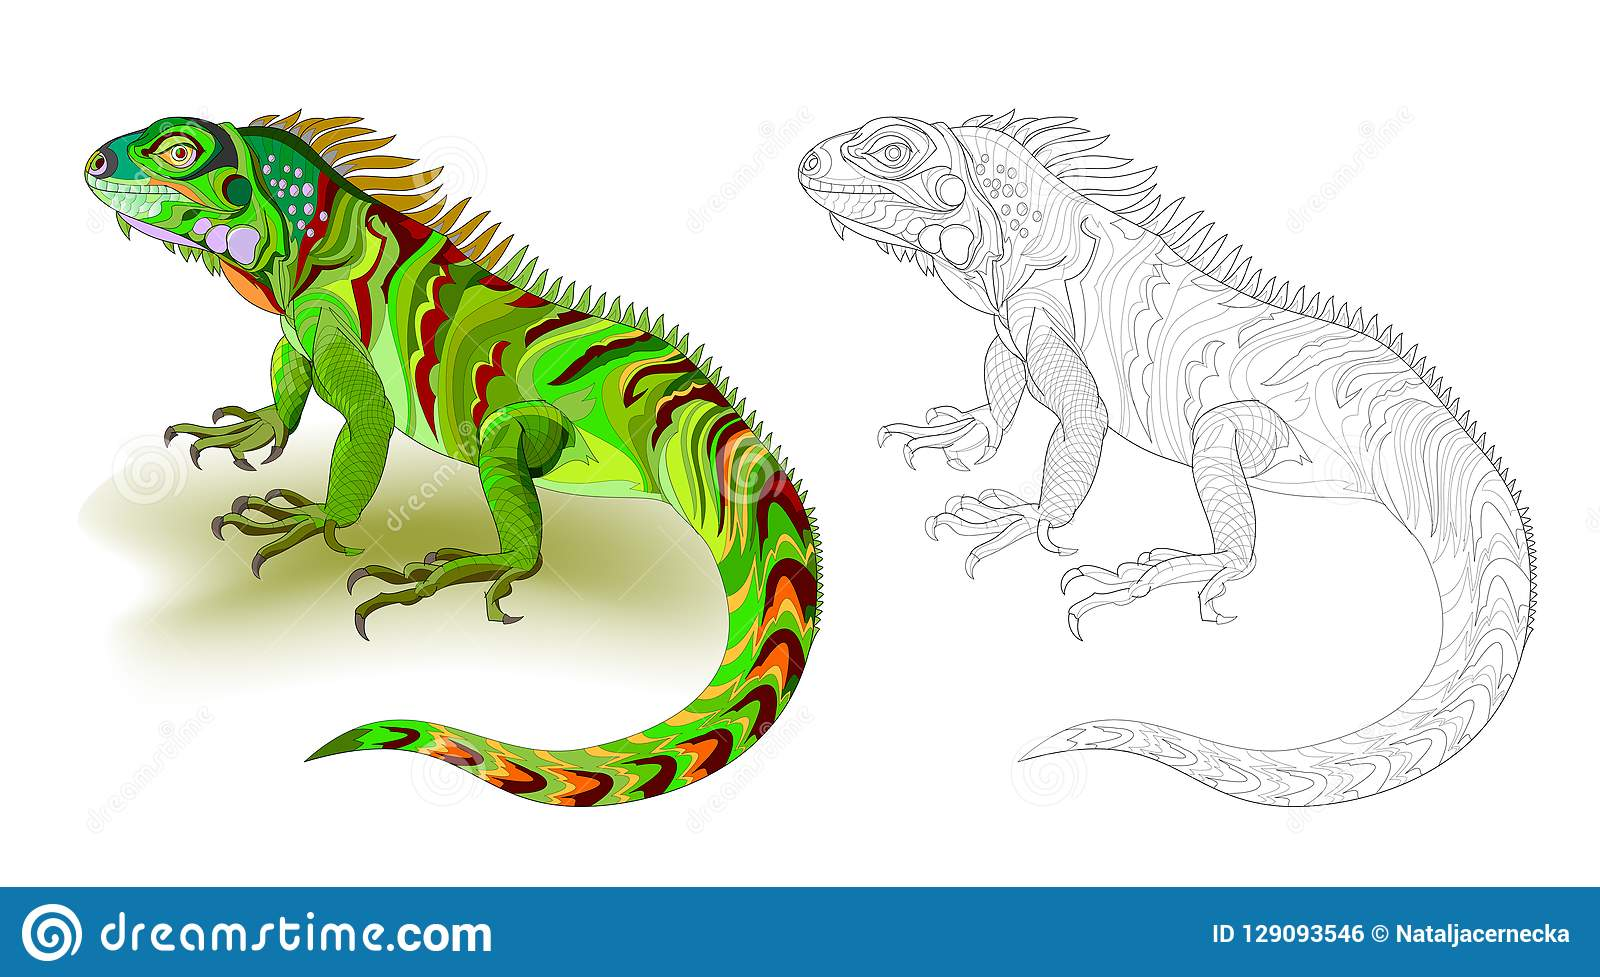 Fantasy Illustration Of Cute Green Lizard Iguana Colorful